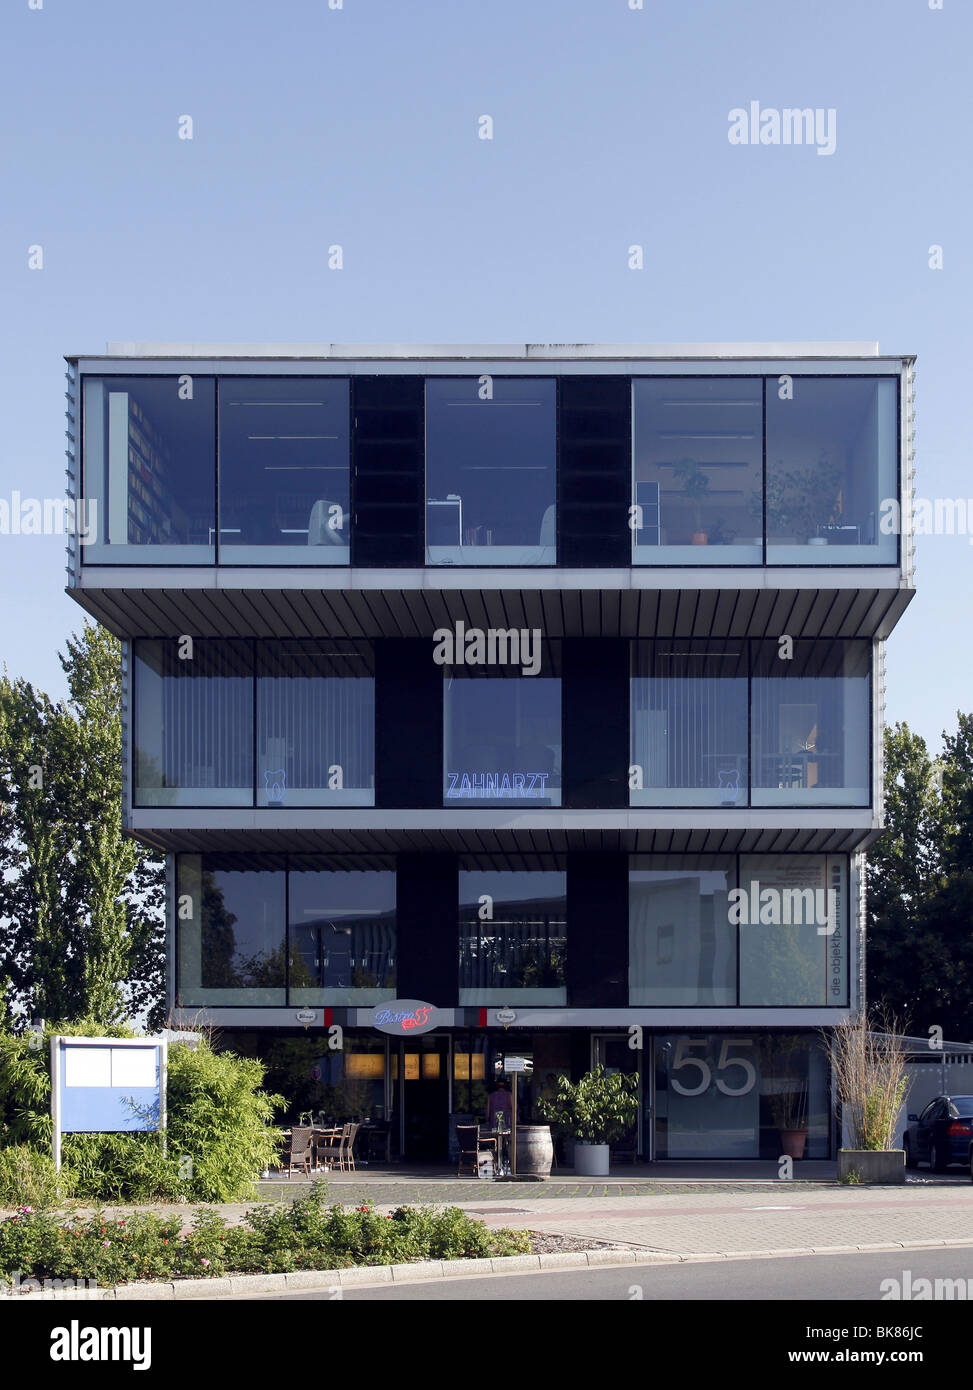 Tiered office building in the business park Stadtkrone Ost, Dortmund, North Rhine-Westphalia, Germany, Europe - Stock Image